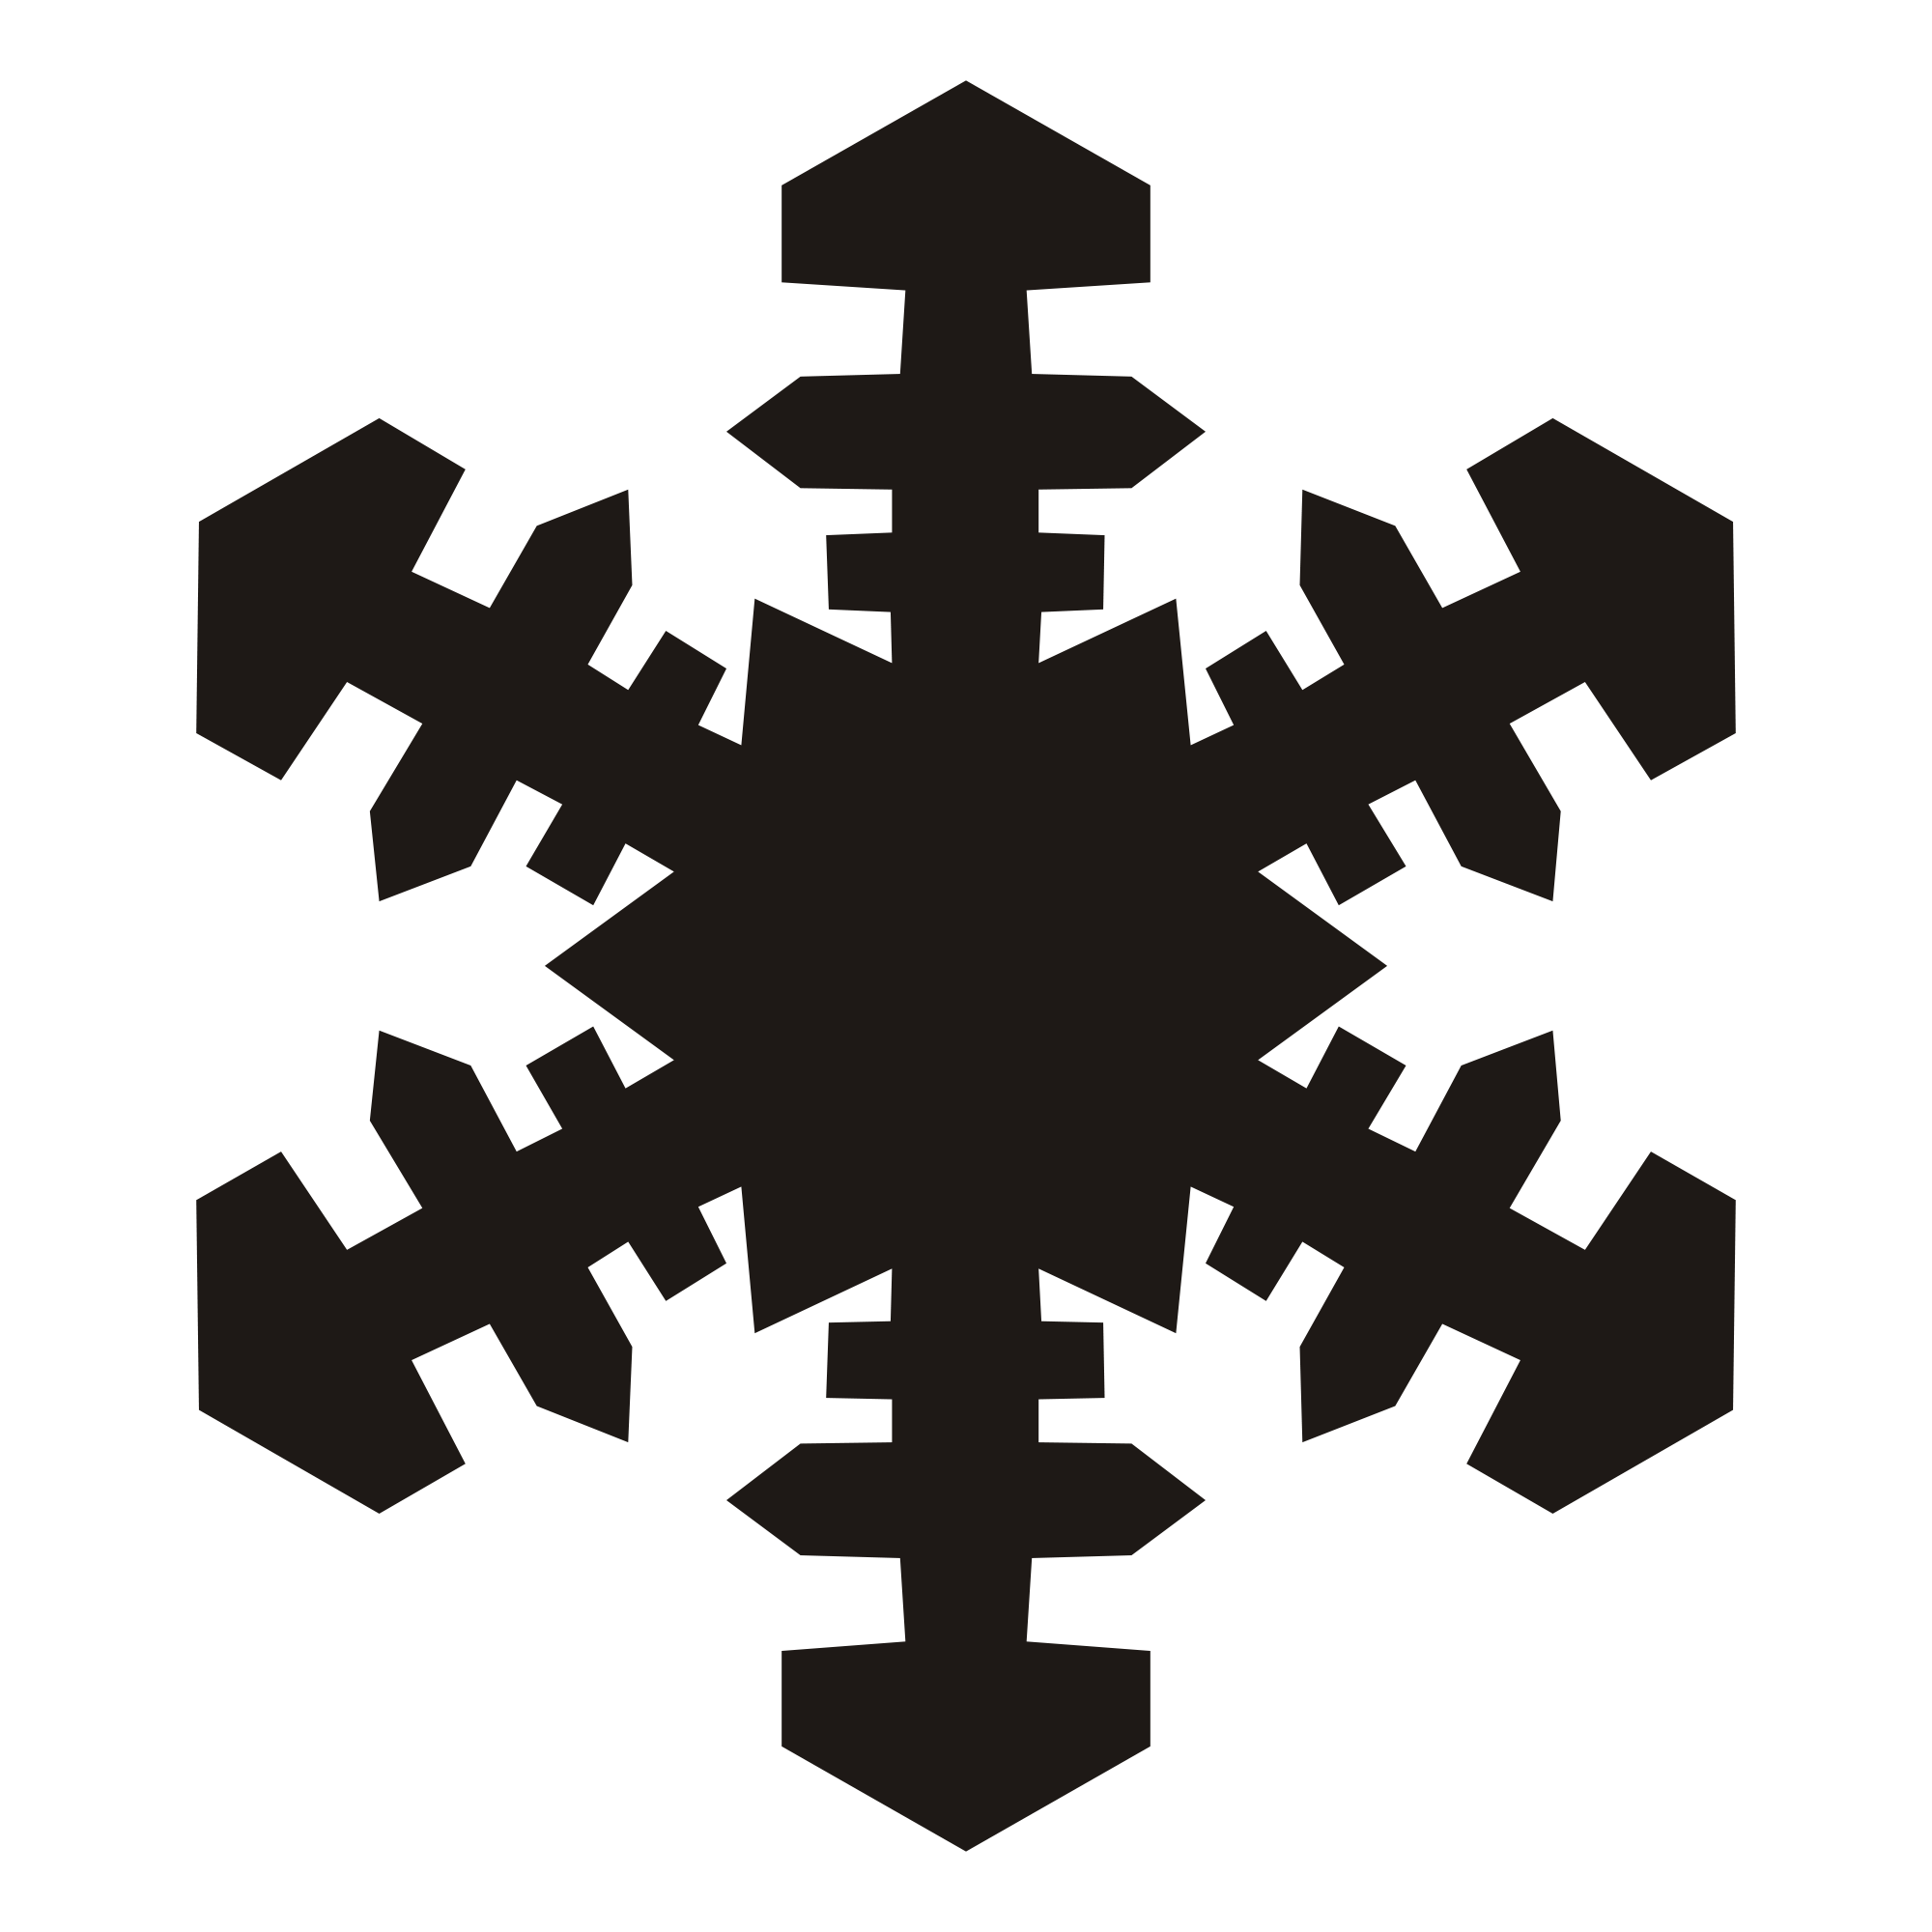 Svg snowflake clipart